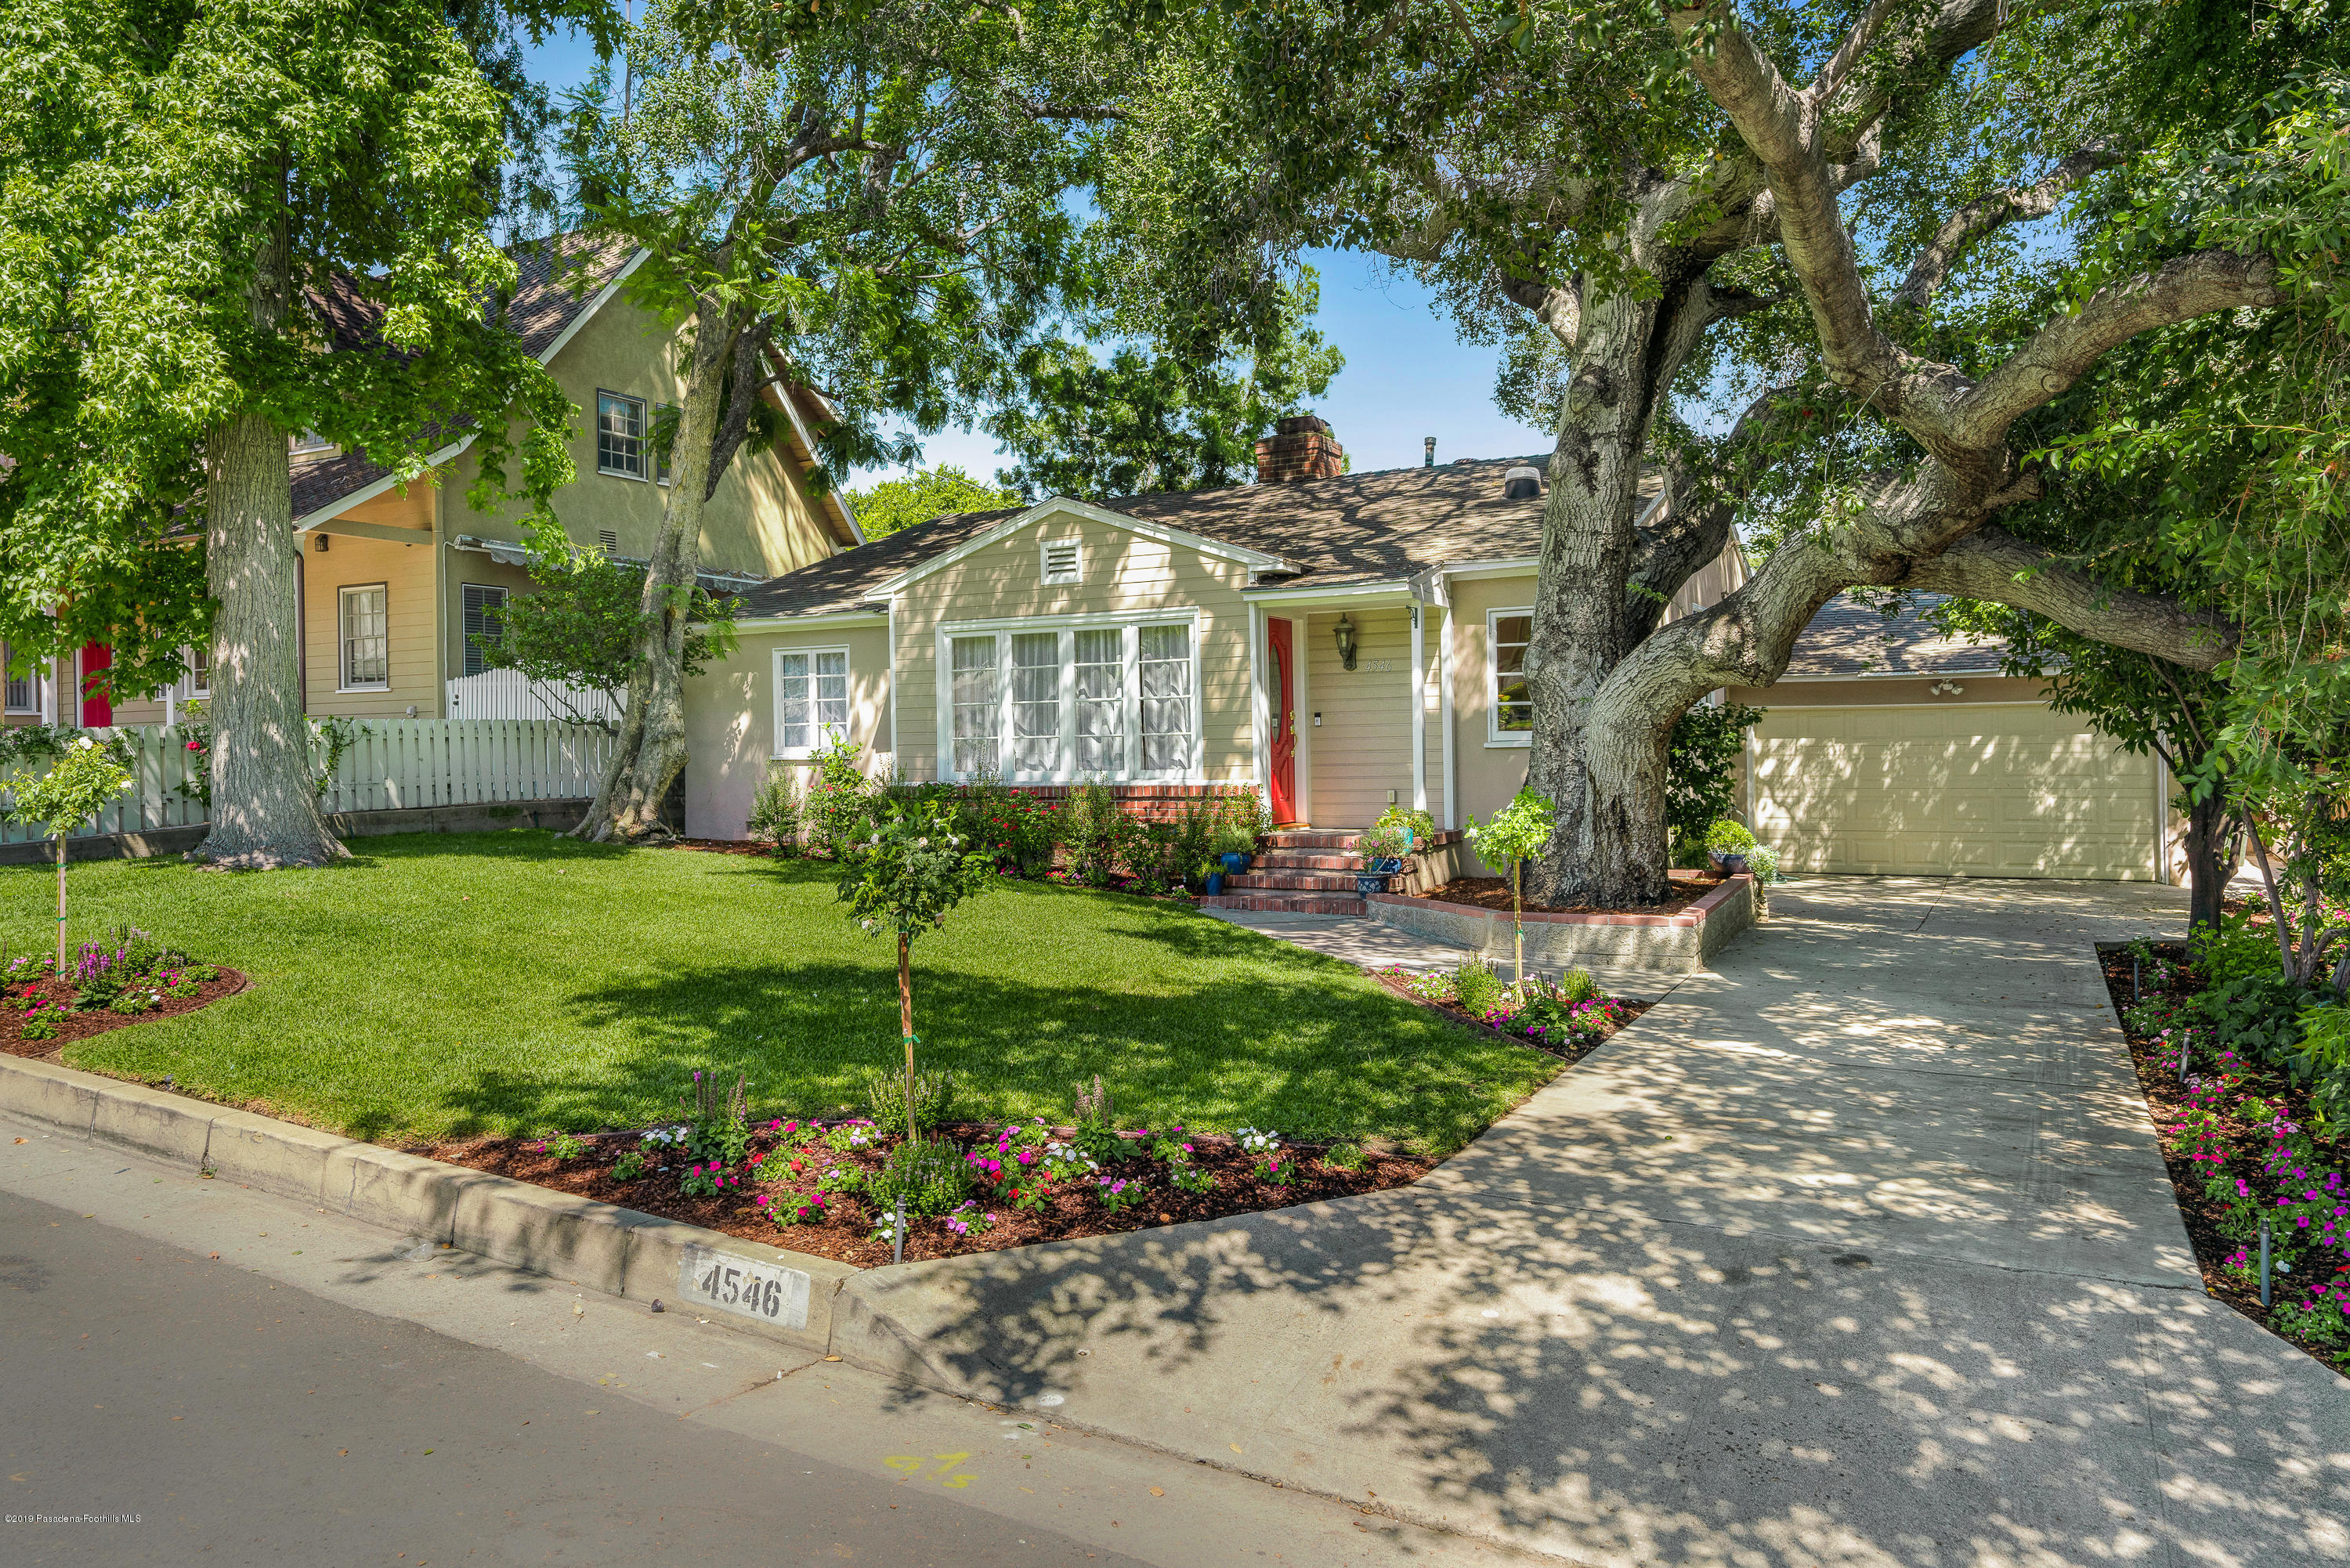 4546 Lasheart Drive, La Canada Flintridge, California